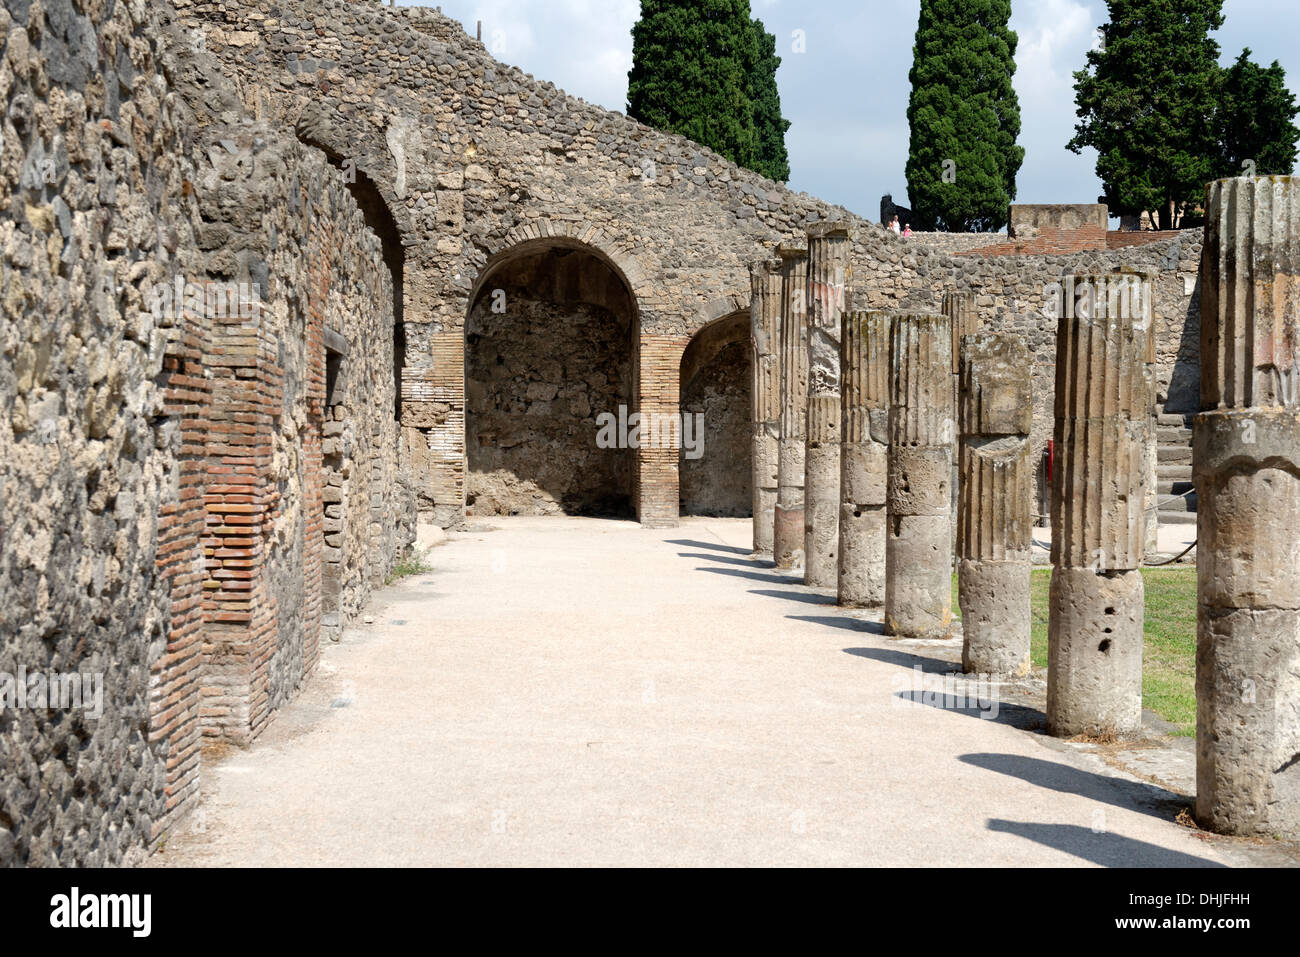 The Arcaded Court of the Gladiators at Pompeii Italy. During the time of Nero the court was transformed into a barracks for Glad - Stock Image